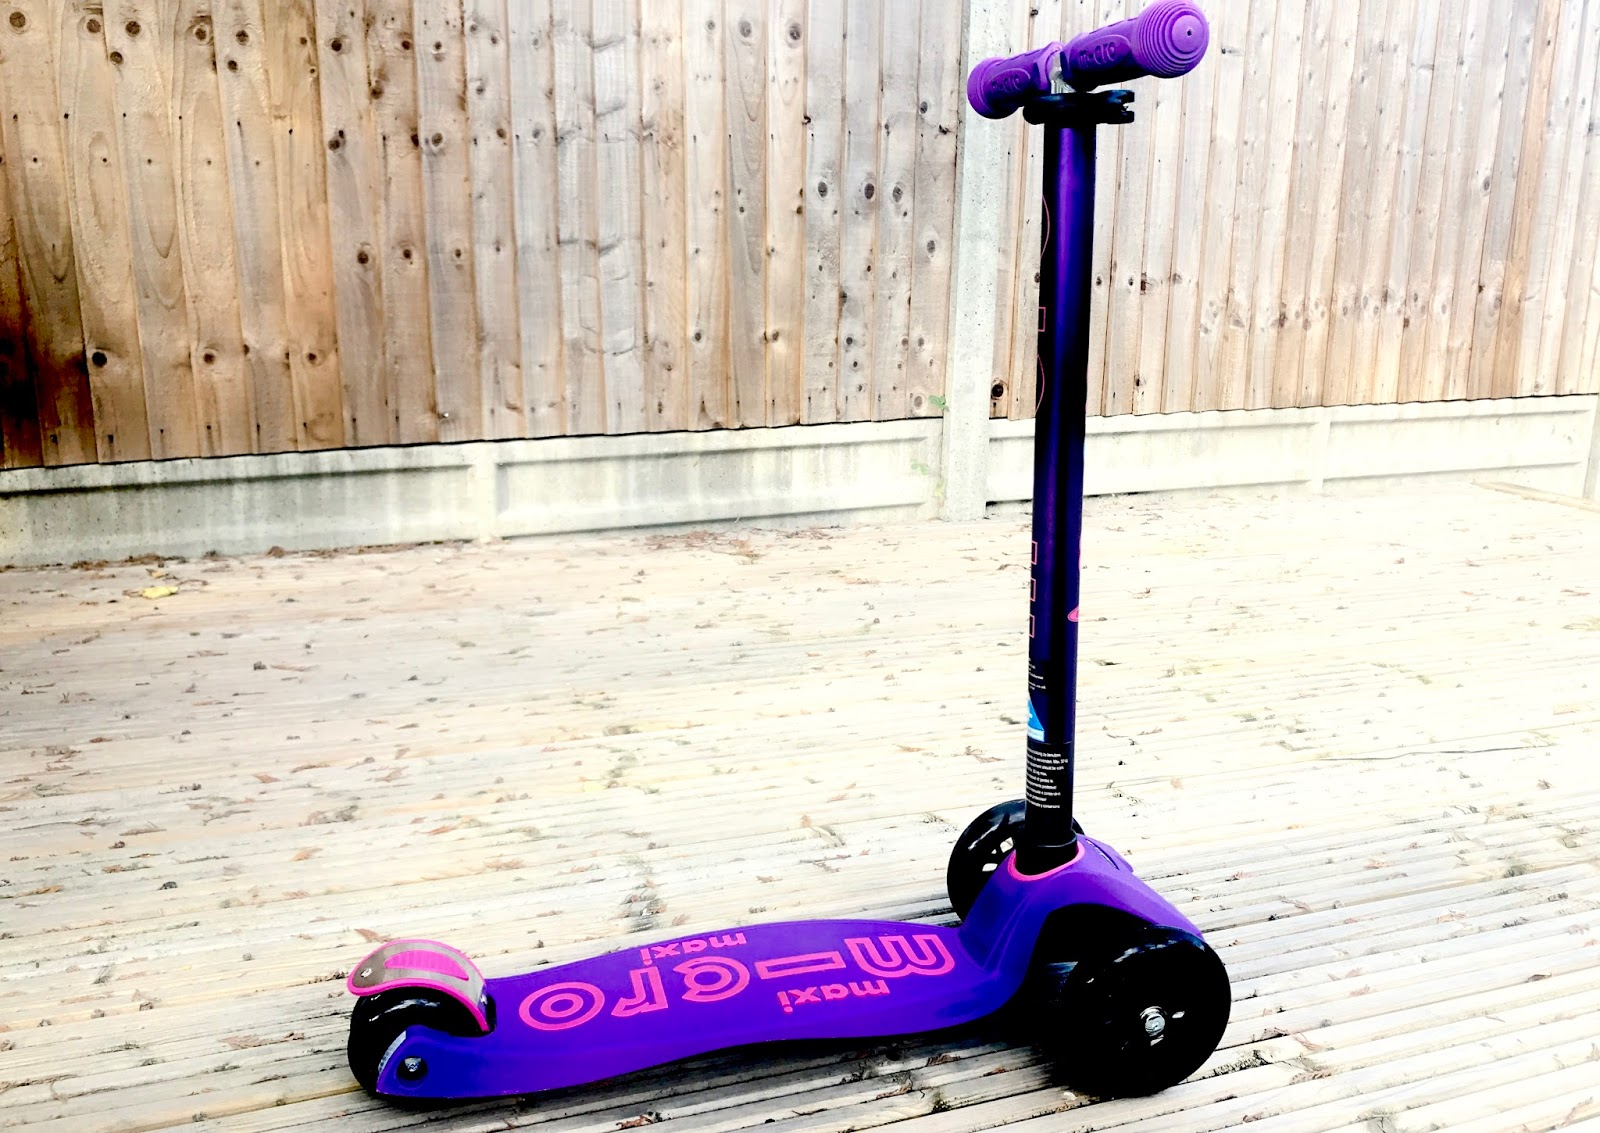 Purple scooter with pink highlights on decking